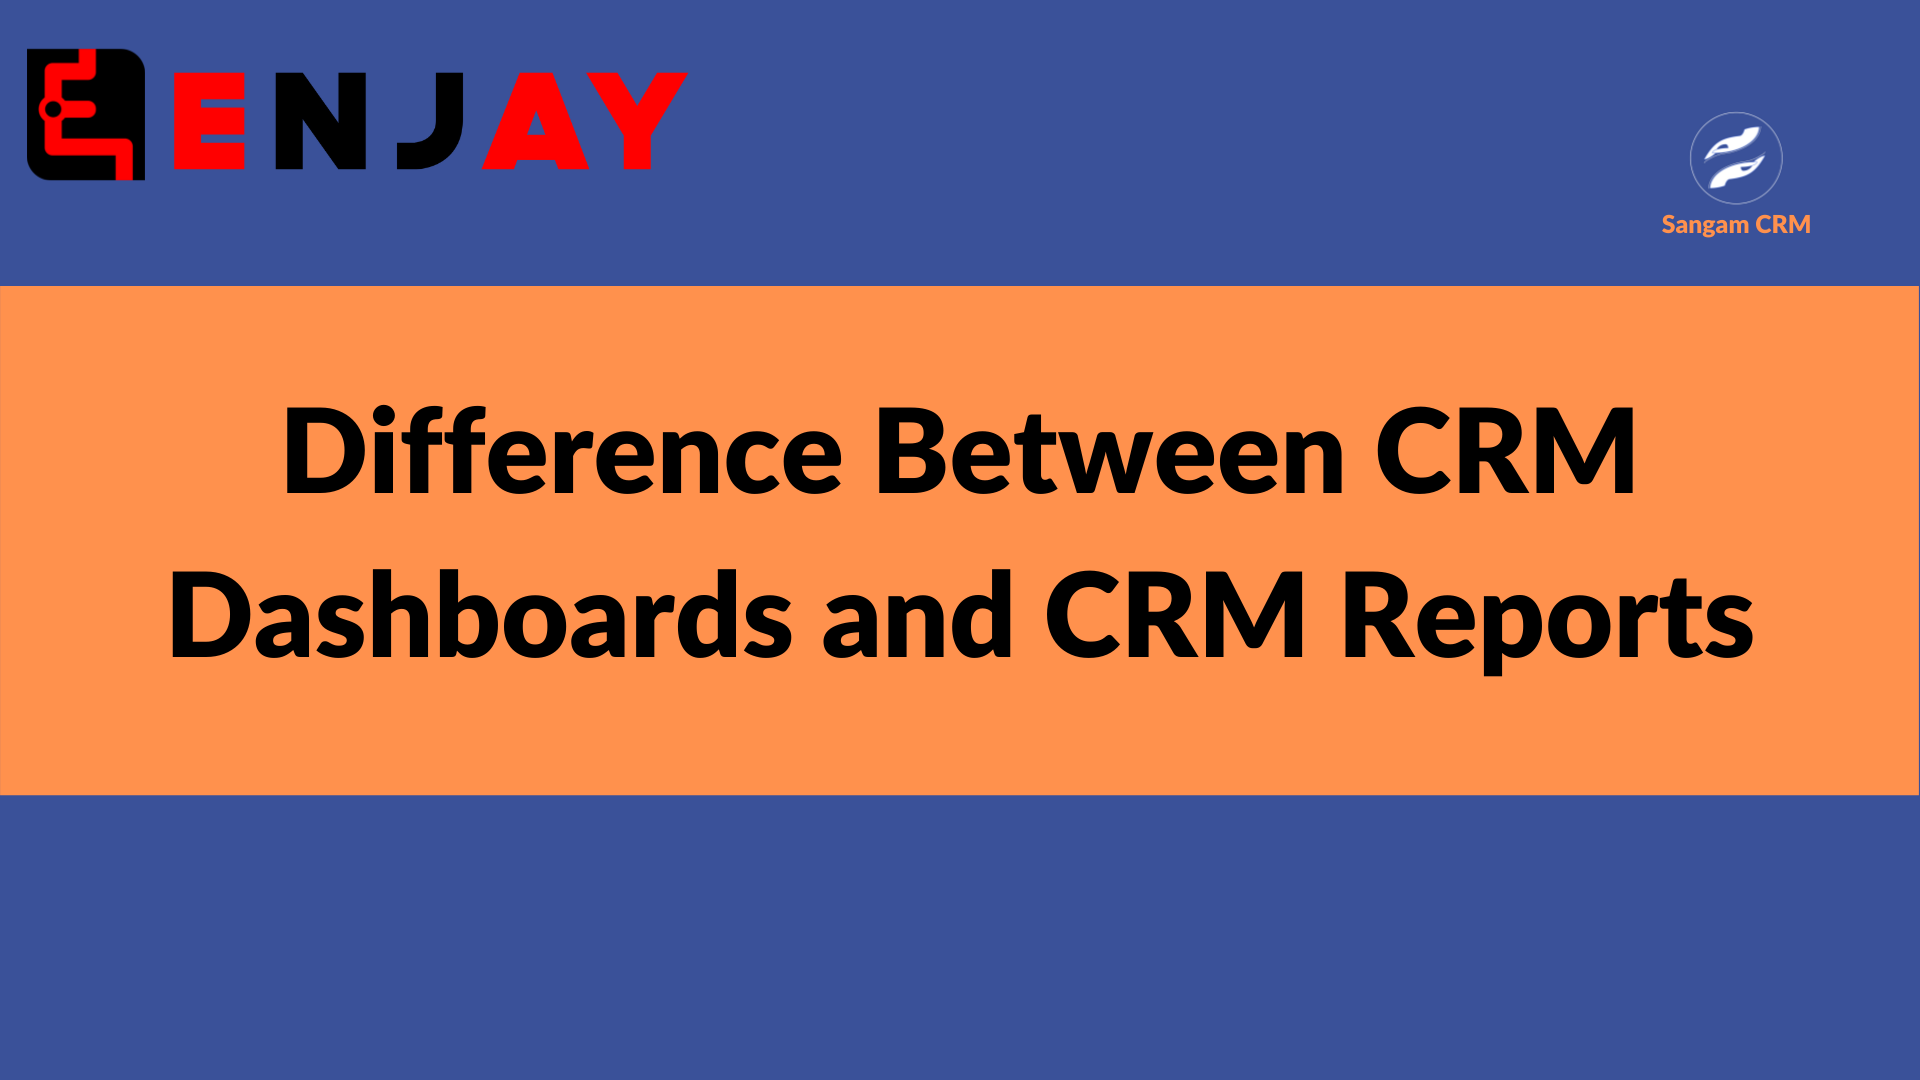 Difference Between CRM Dashboards and CRM Reports